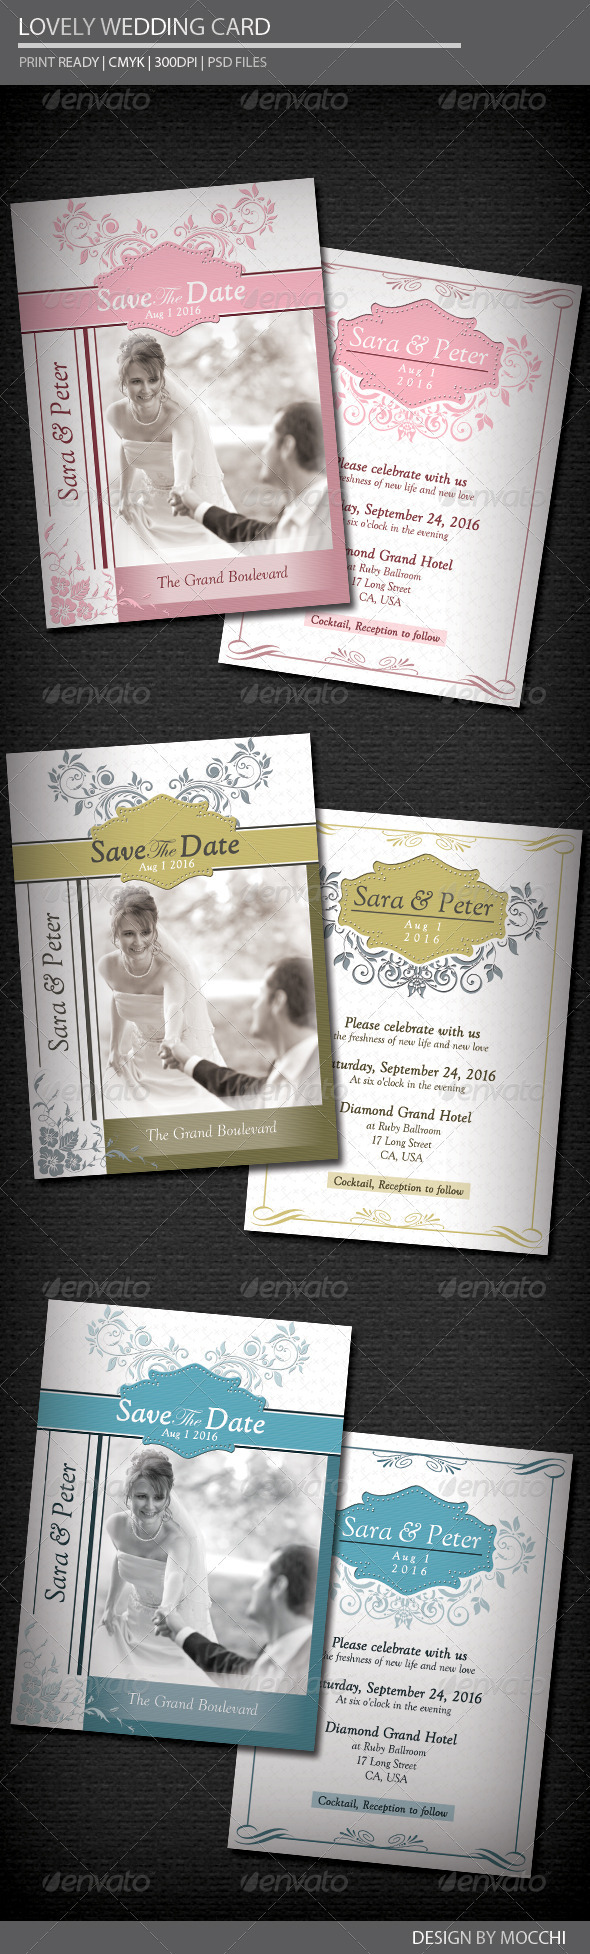 Lovely Wedding Card - Weddings Cards & Invites